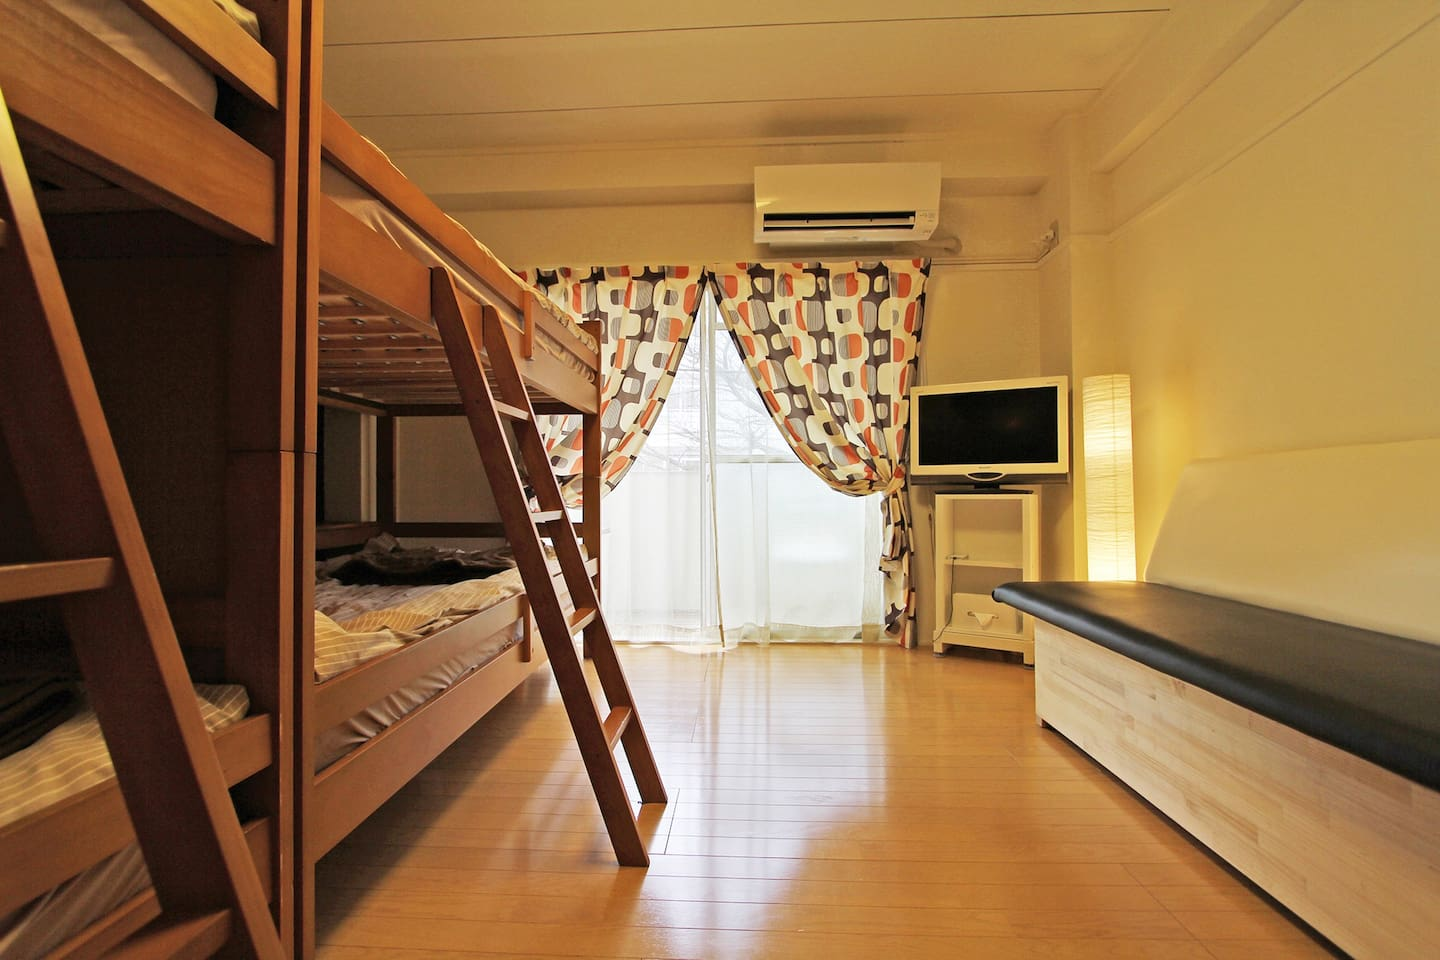 - Brand New AC (2016/Feb)  - FlatScreen TV. -Bench Sofa Bed for 5th person  to sleep